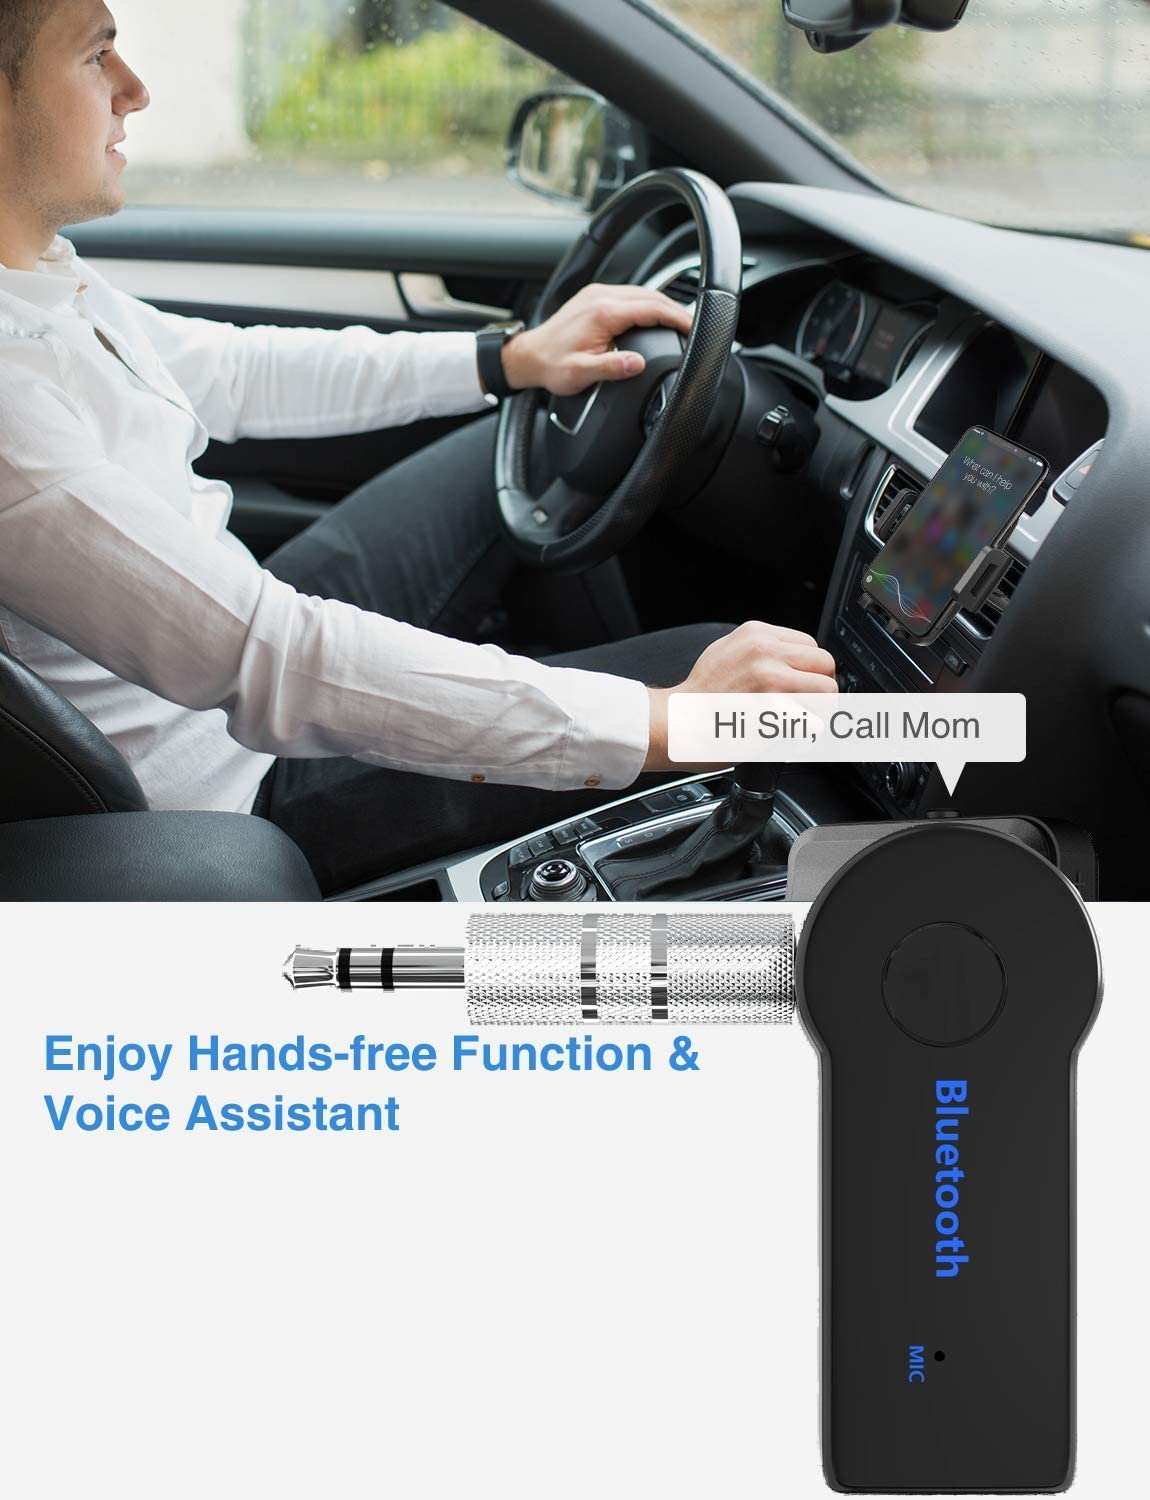 Portable Wireless Bluetooth Car Aux Adapter /& Hands-Free Car Kits Audio Bluetooth Receiver for Speakers Home Stereo Music Streaming Sound System 3.5 mm Earphone Car Bluetooth Receiver V4.2